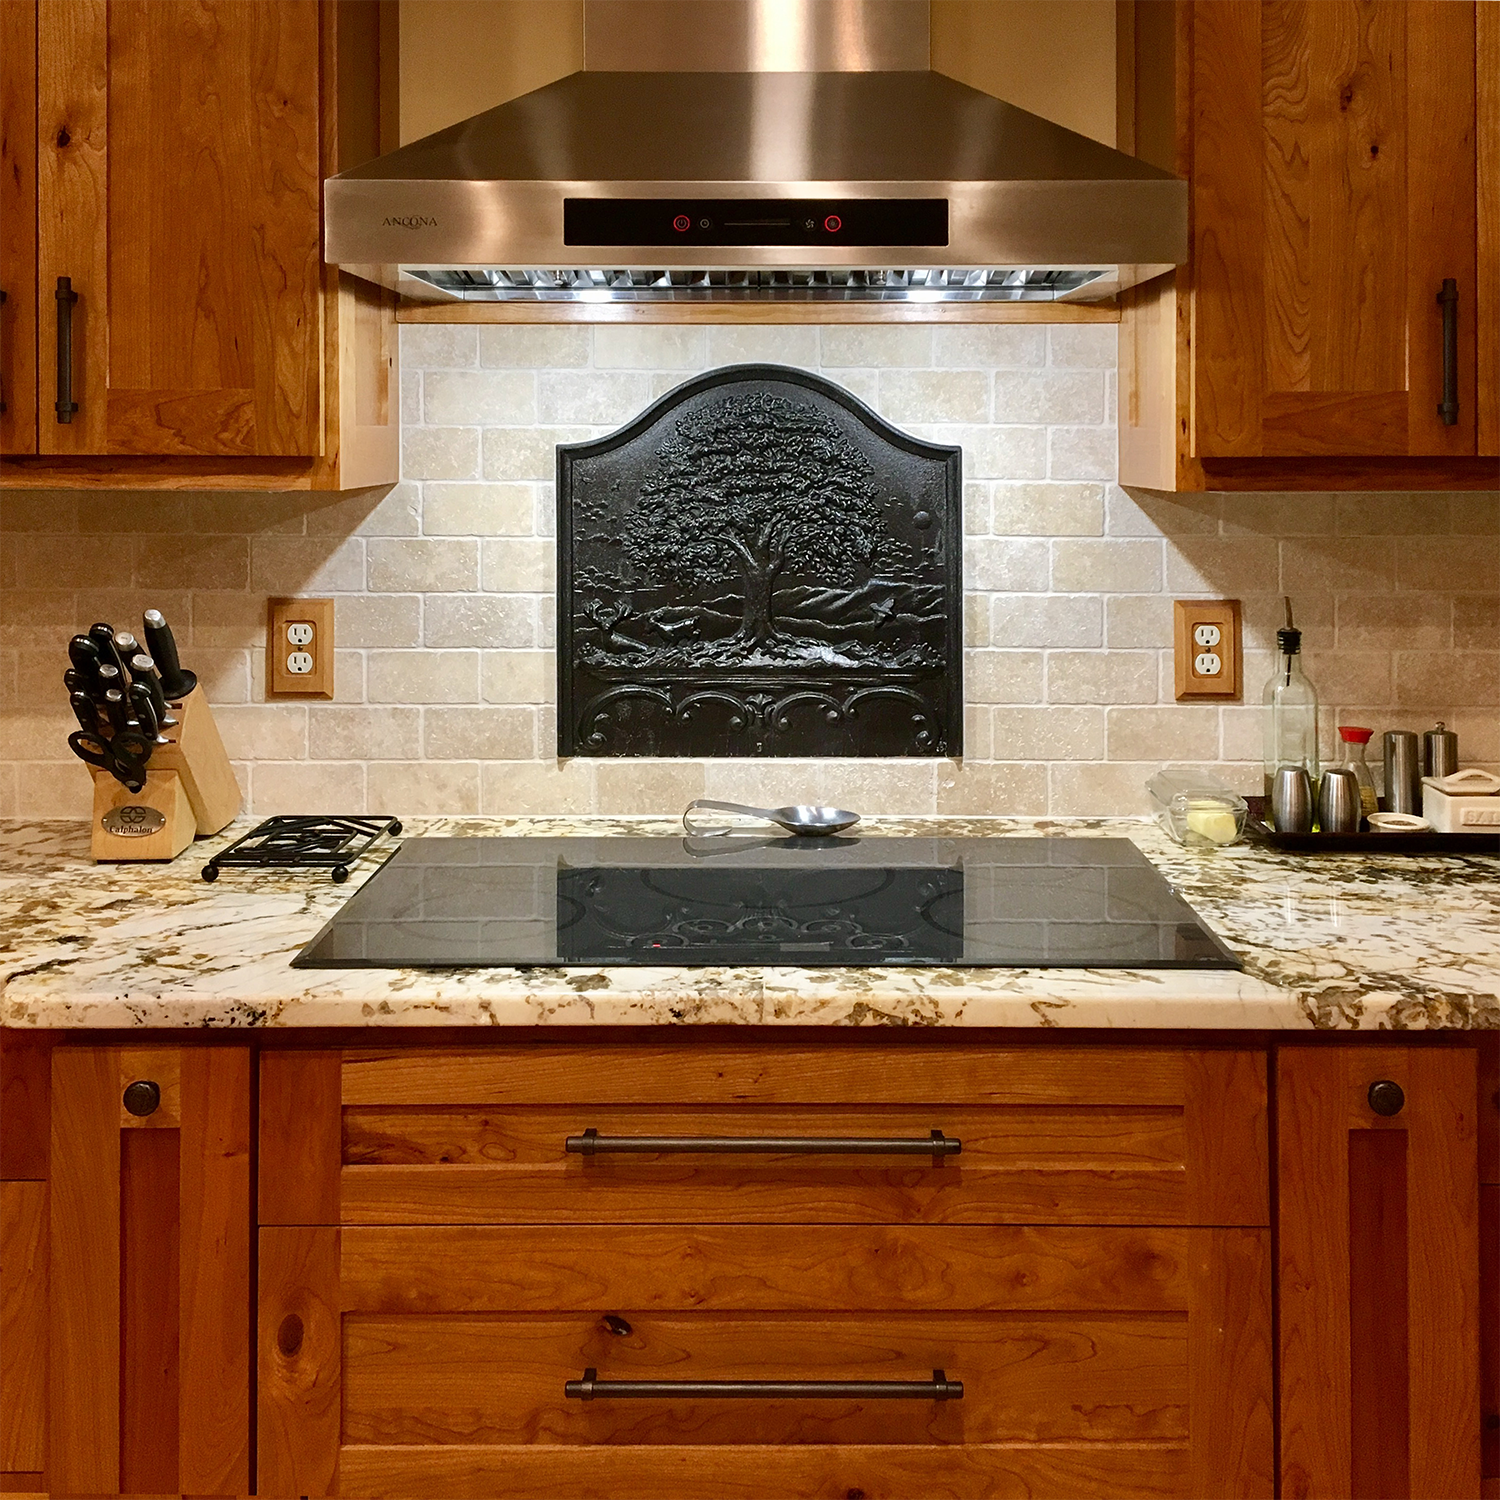 Tall Oak Fireback Backsplash